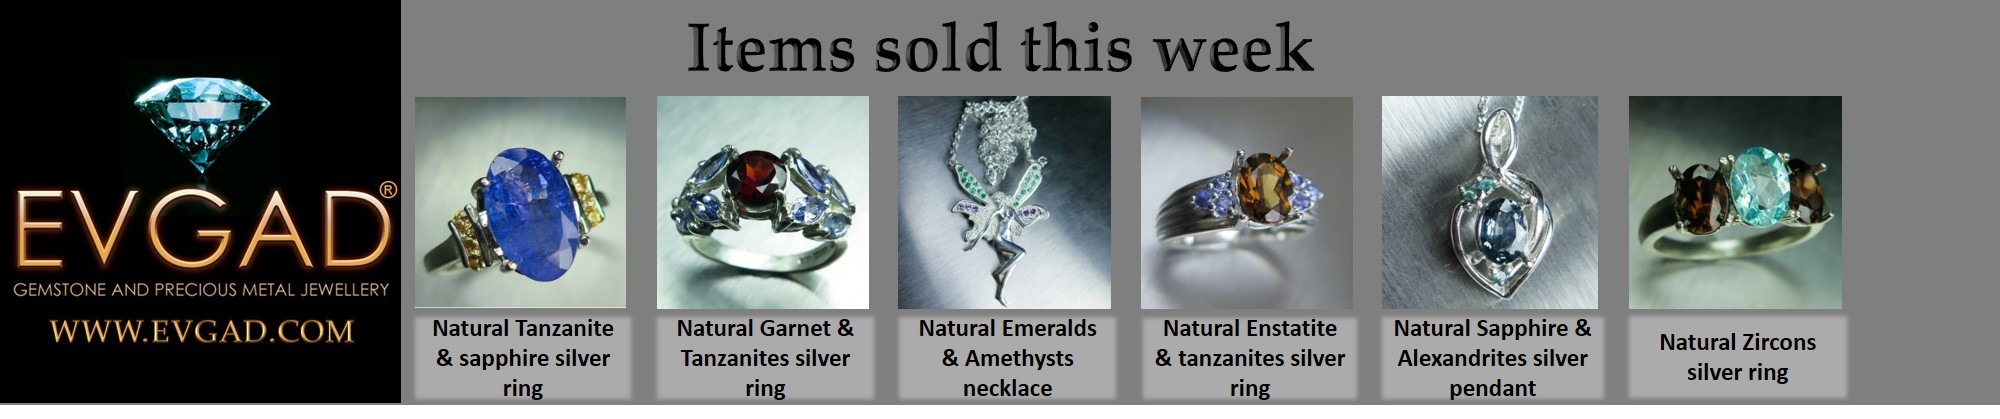 Silver rings and pendants in demand